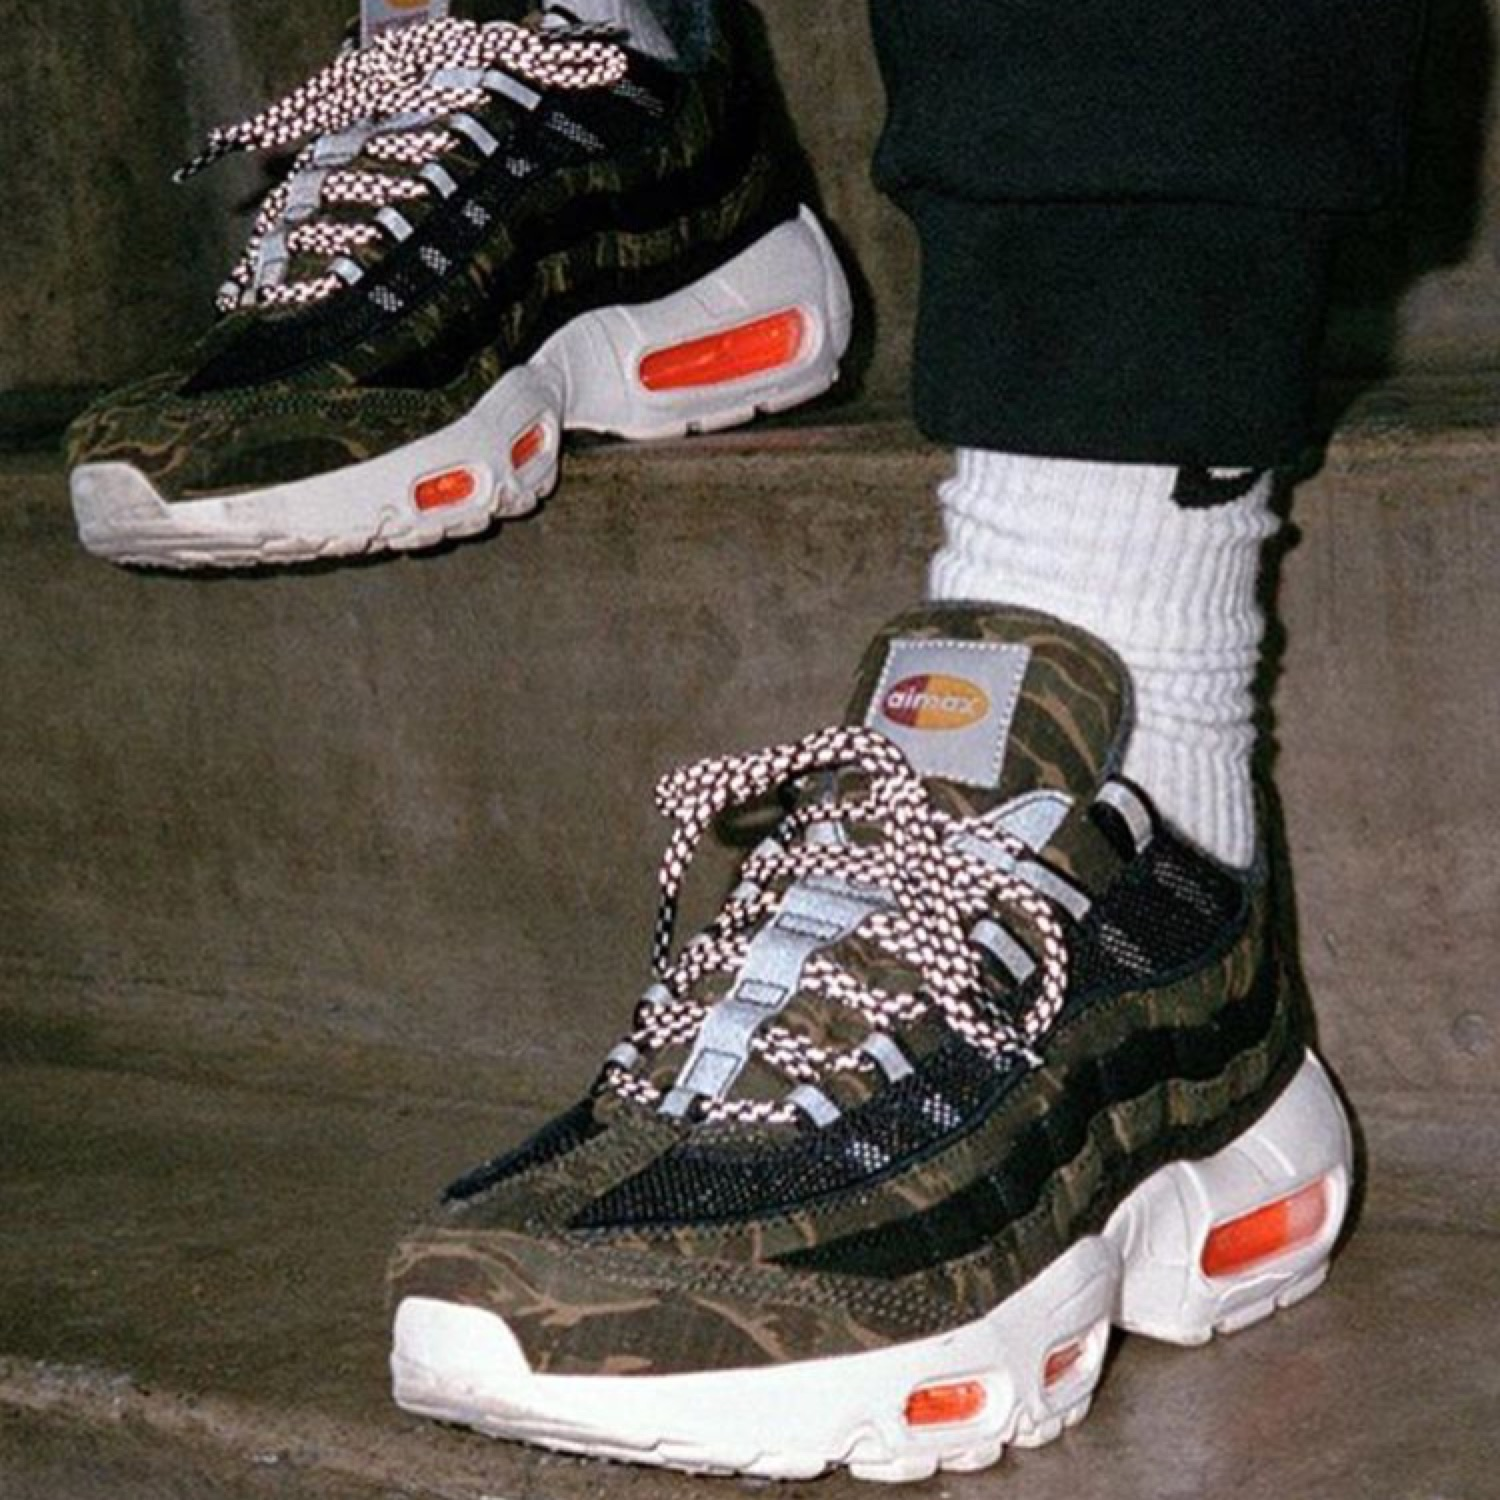 brand new 48d6c 48639 Nike X Carhartt Wip Air Max 95 Uk 9.5 Us 10.5